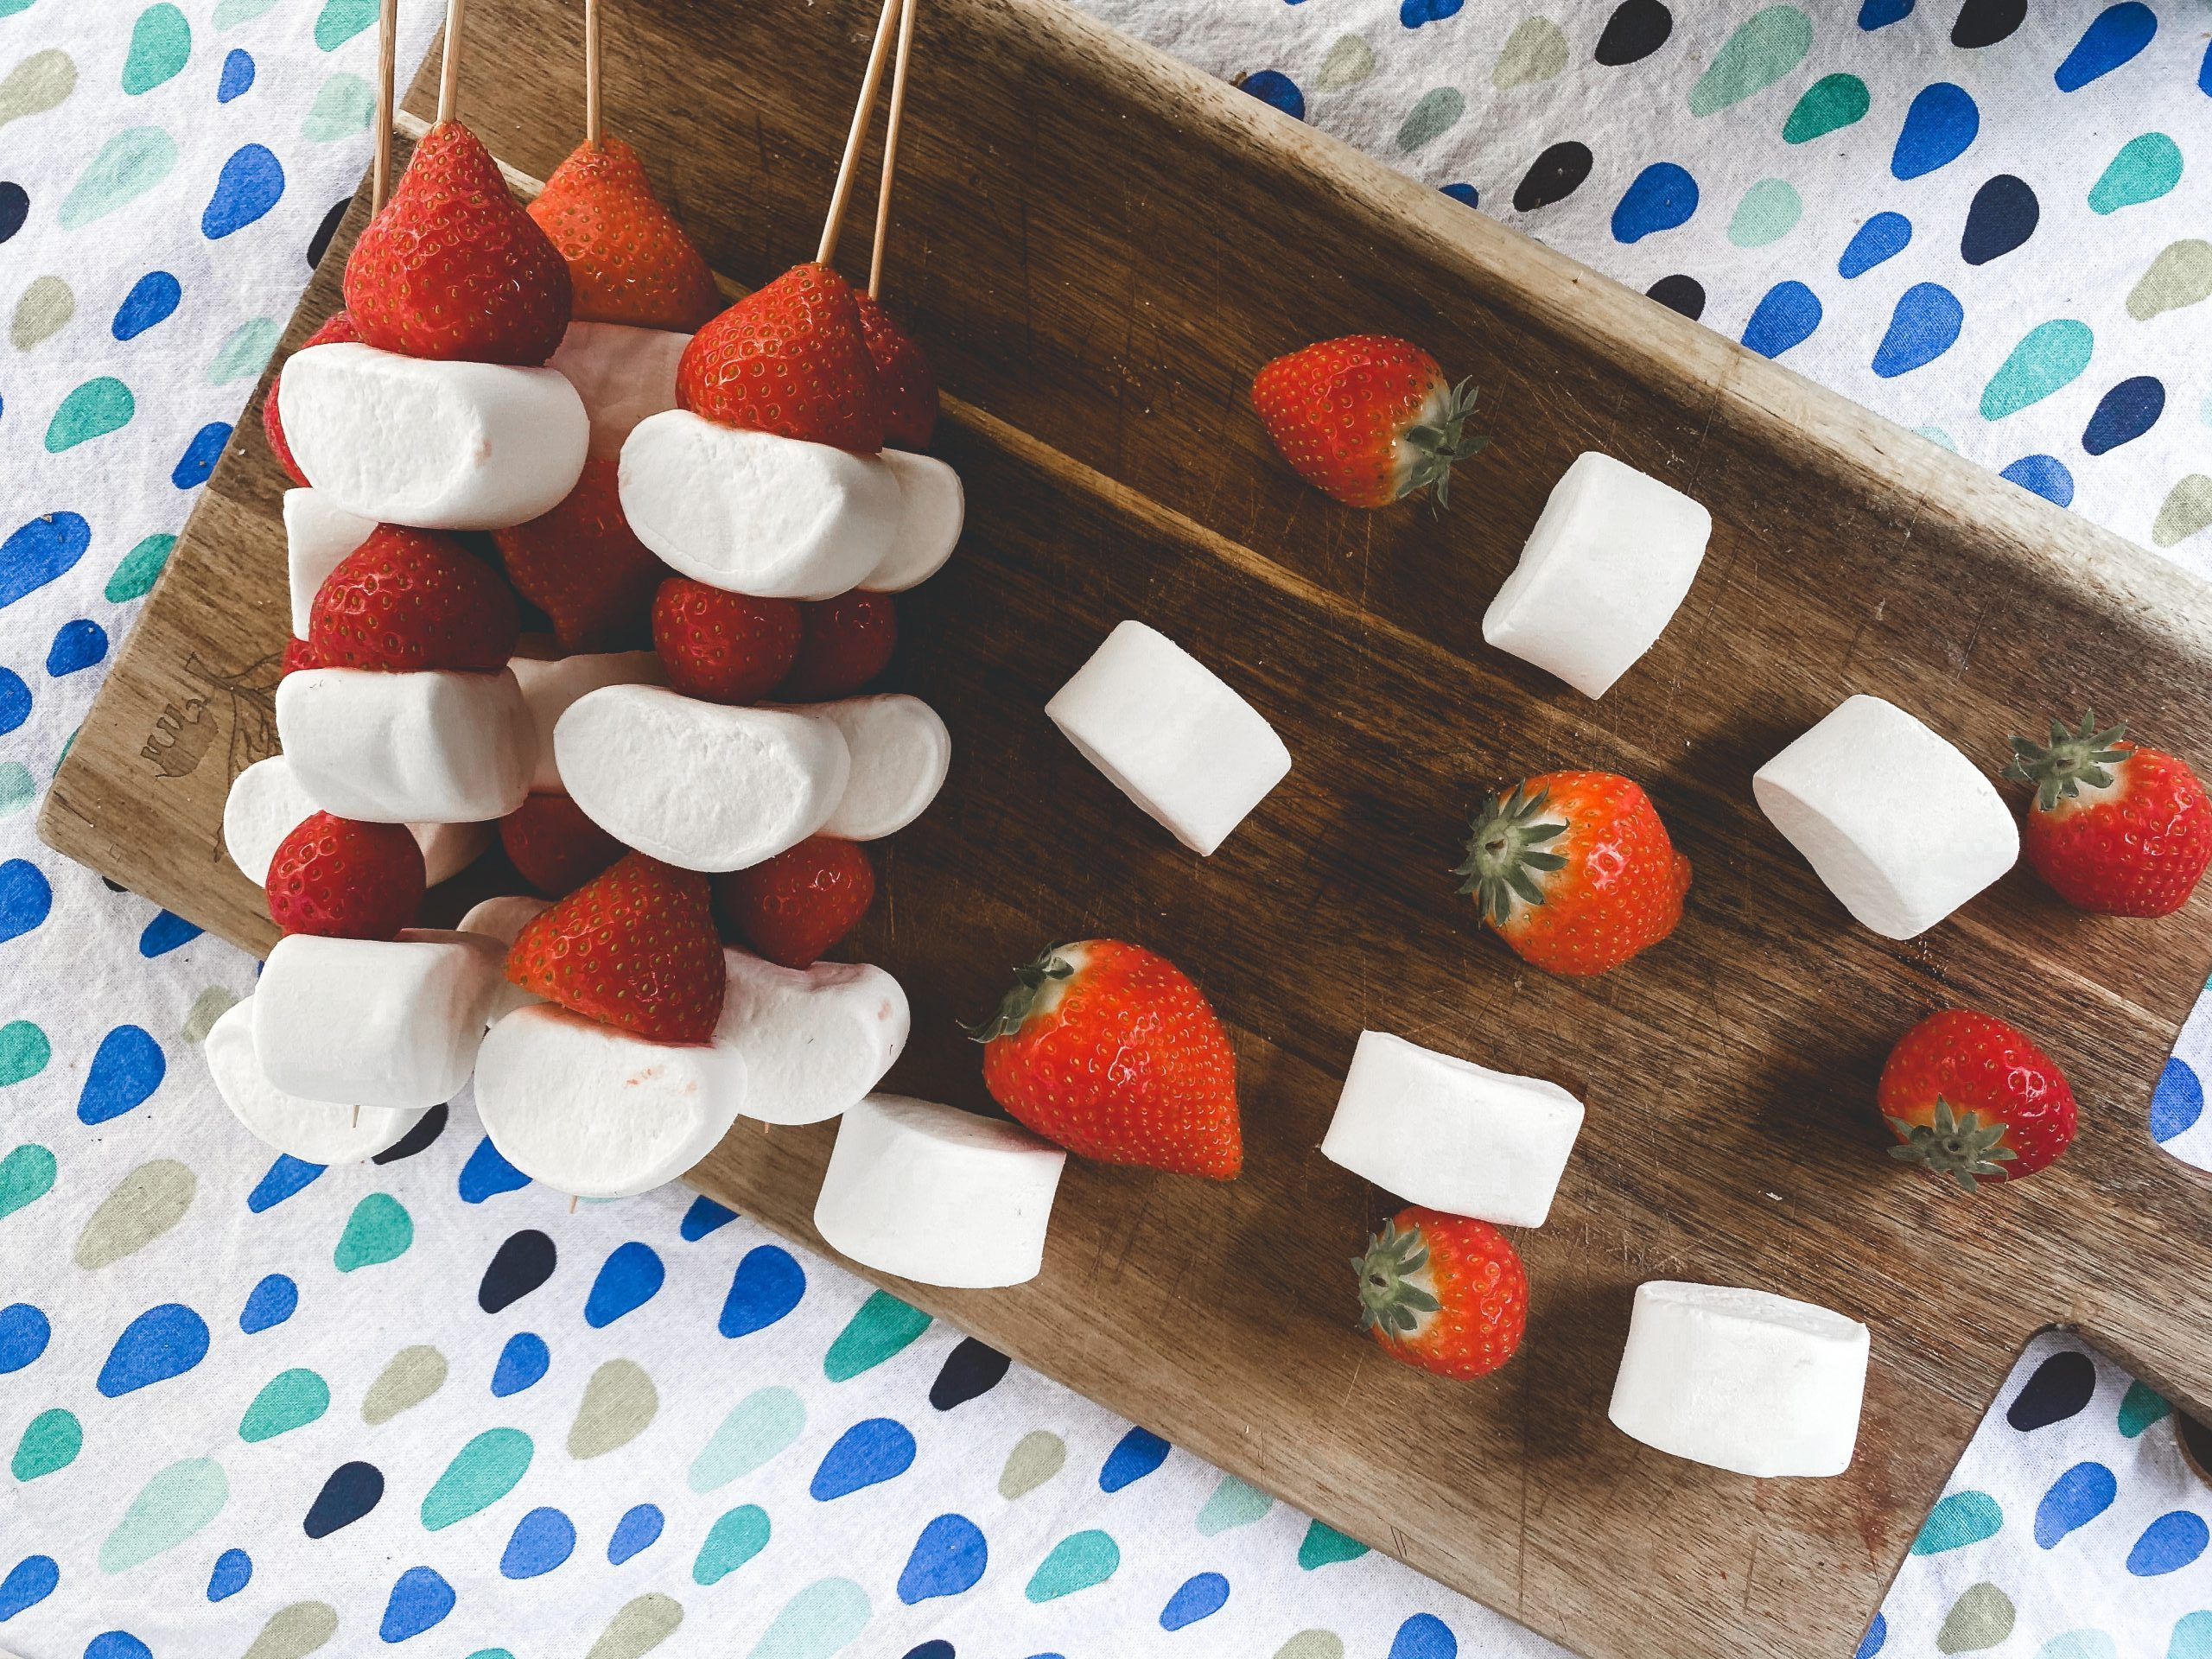 Marshmallow BBQ spies